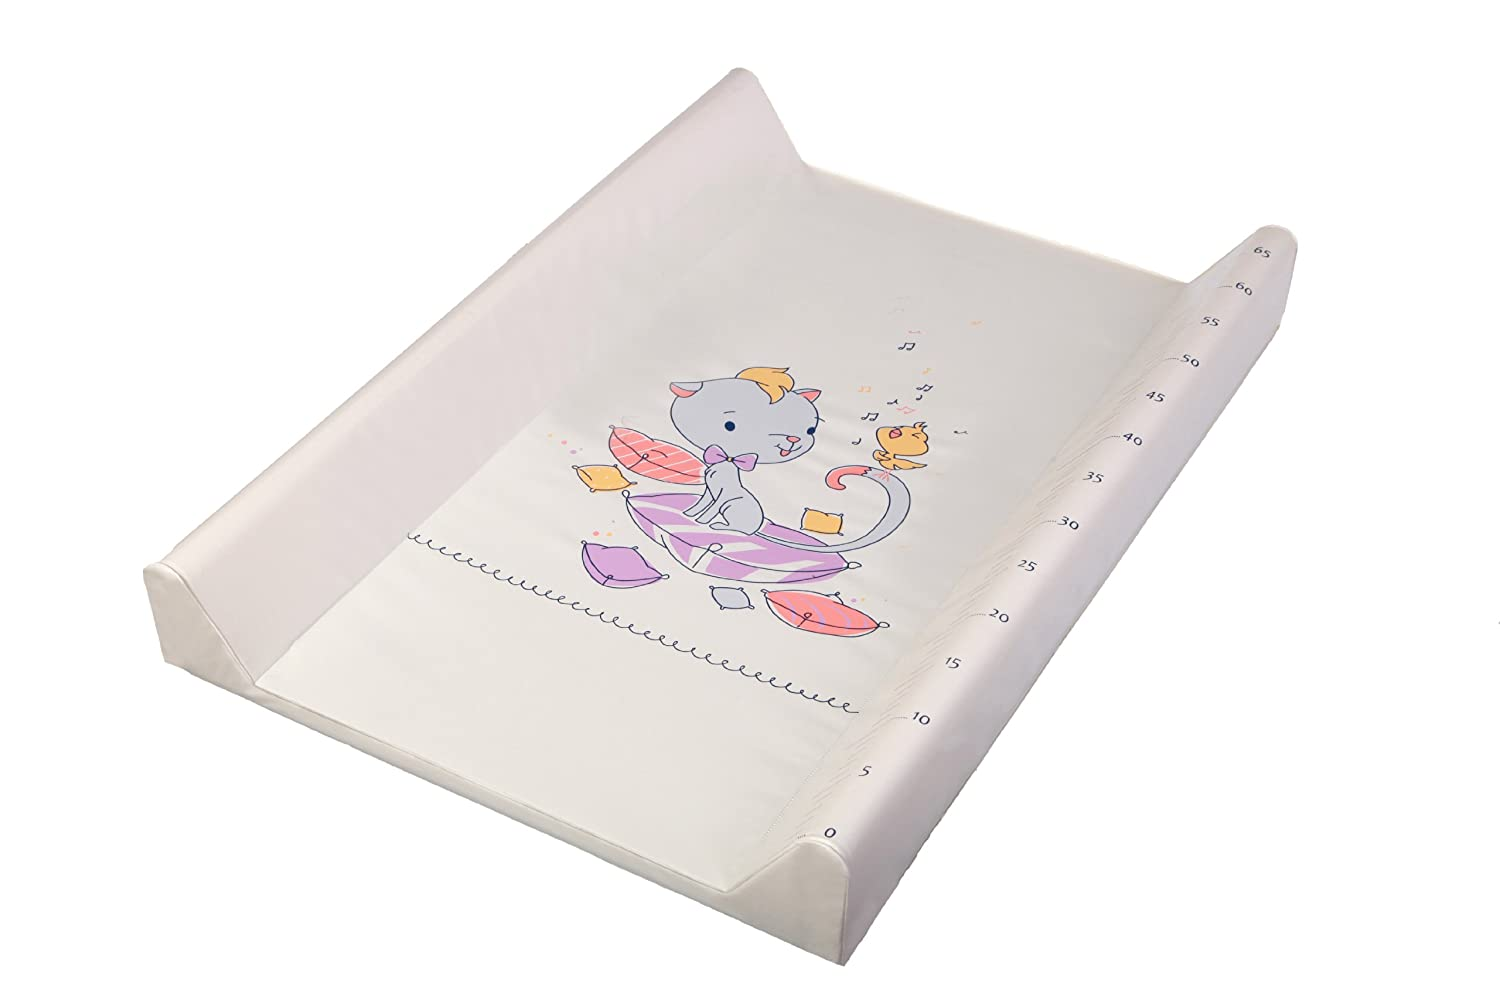 Changing Pad - Changing Mat - Changing Cover - Cotbed Changing Pad - Cot Bet Changing Mat - Changing Mat with hard base - Changing Table Top - with print and measuring growth tape in cm! Kitty, PVC, 70x50 cm Rozeta